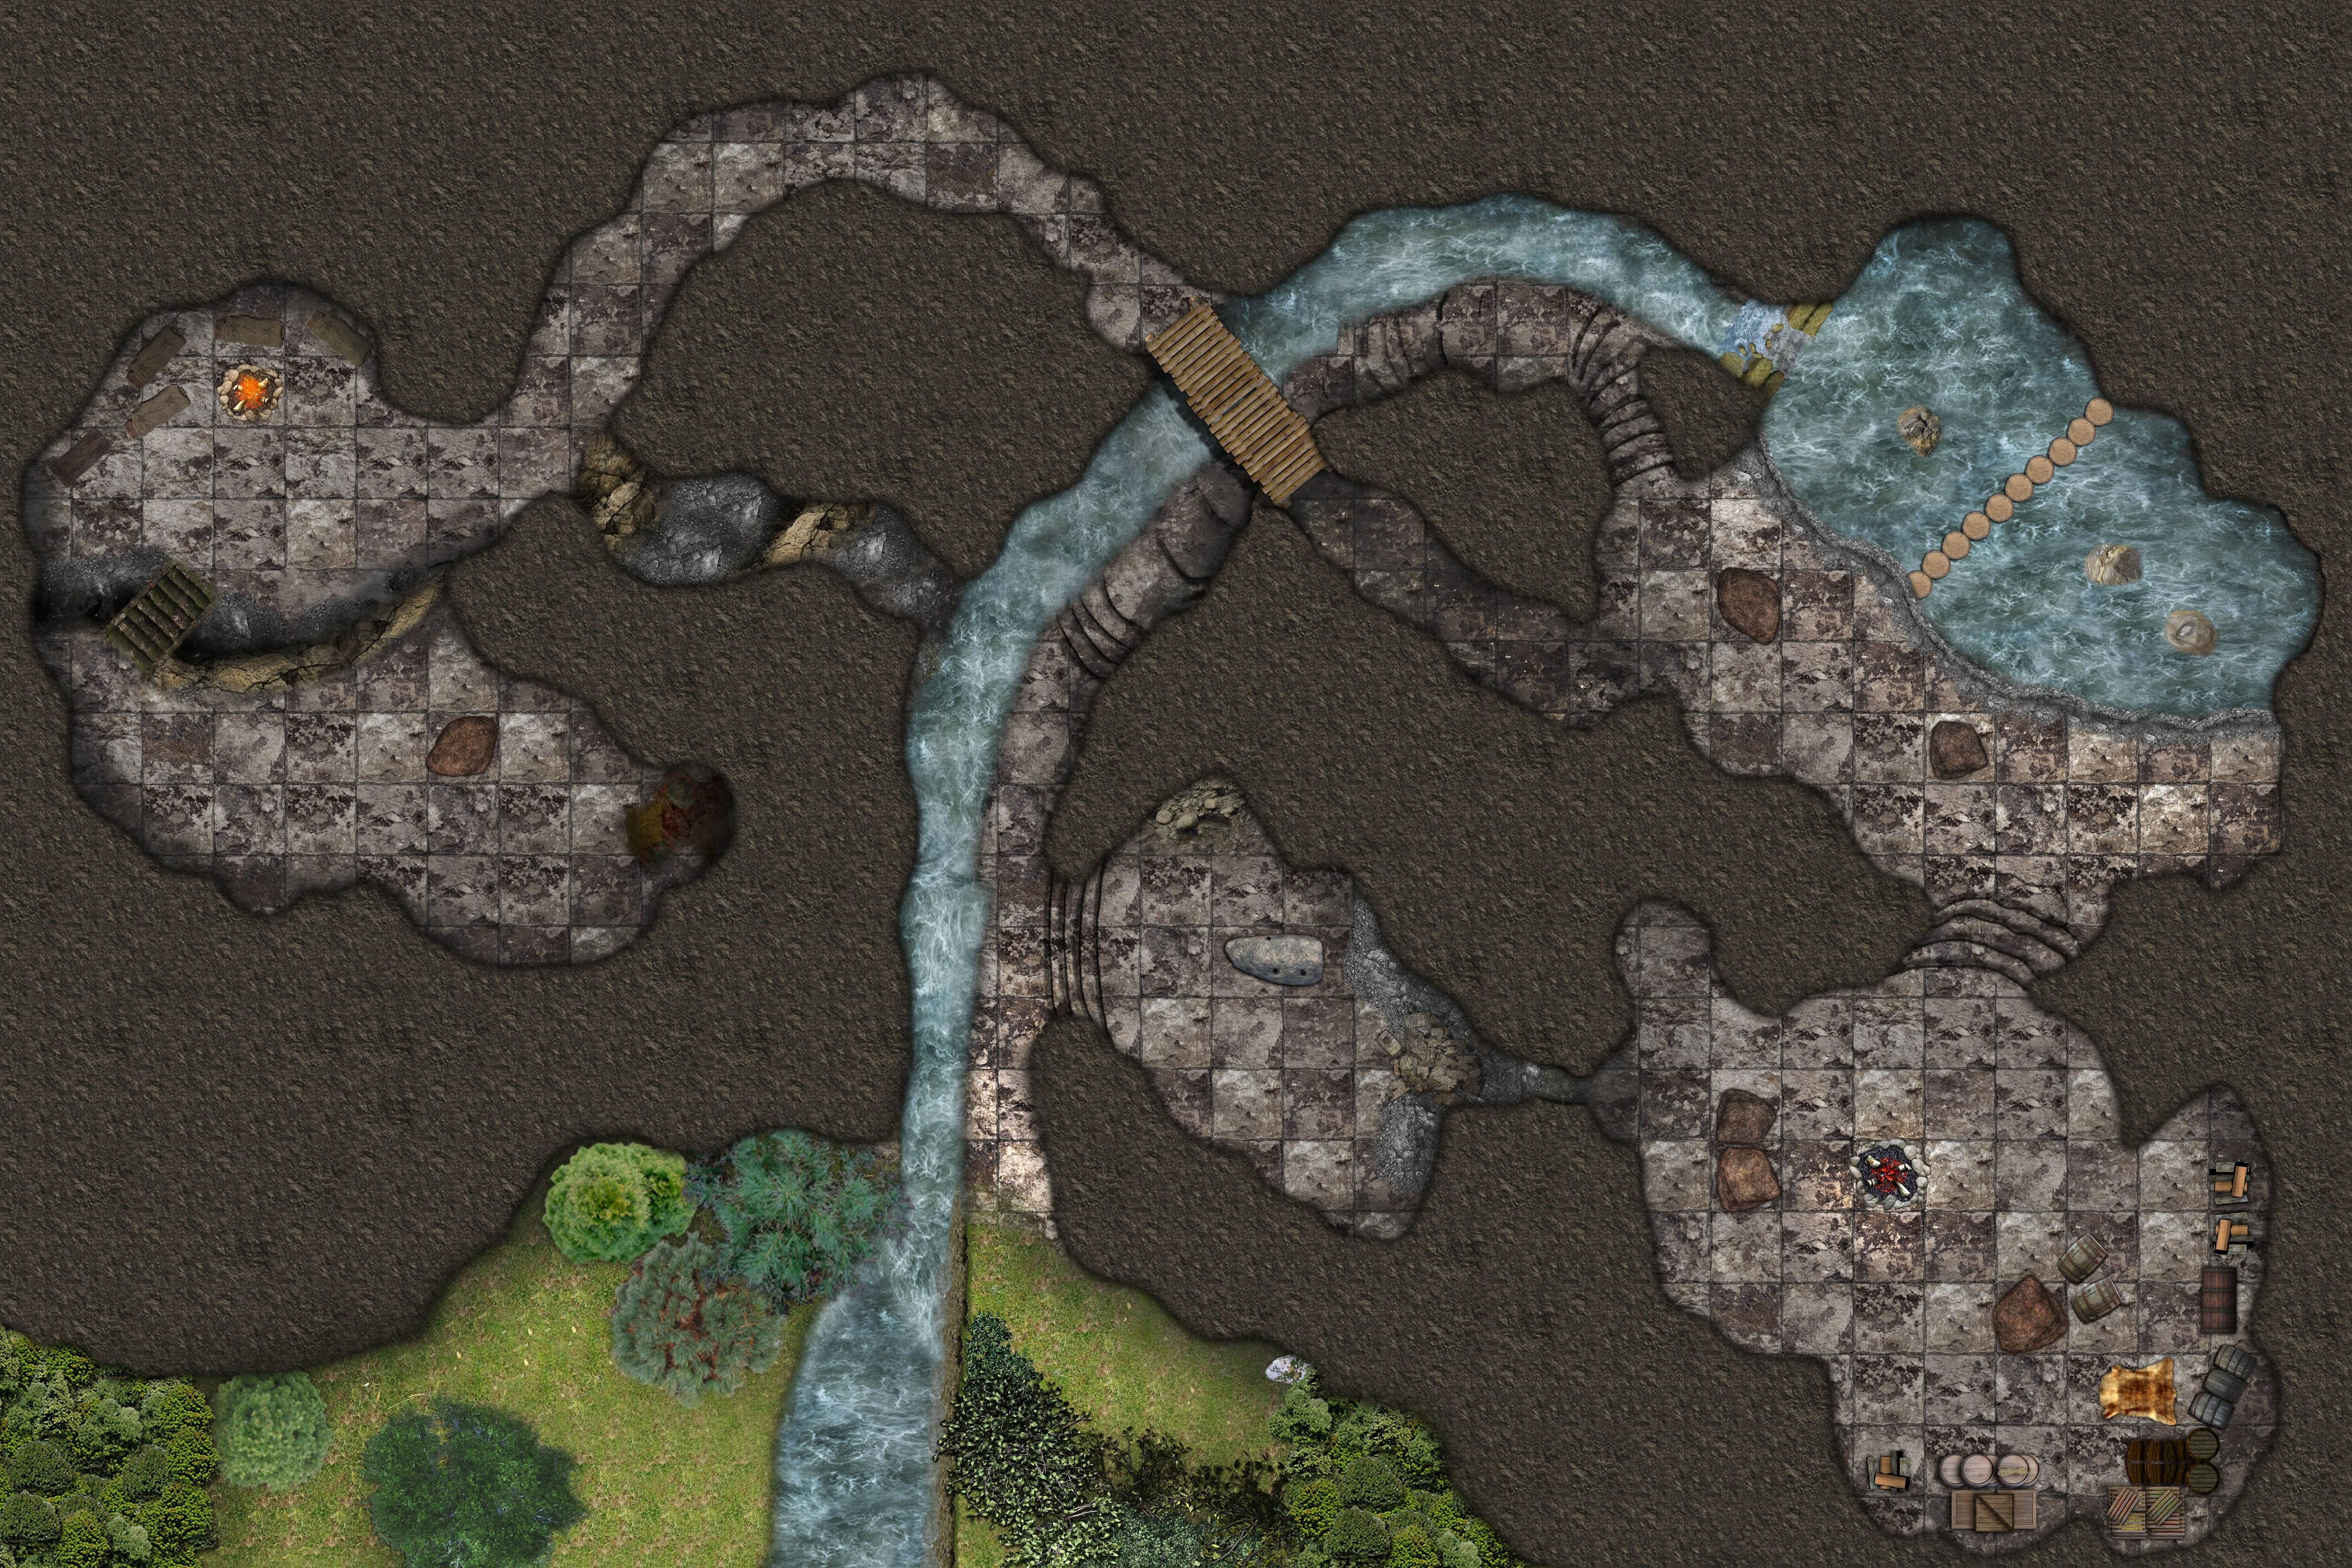 Cragmaw Hideout In 2020 Lost Mines Of Phandelver Dnd World Map Dungeon Maps